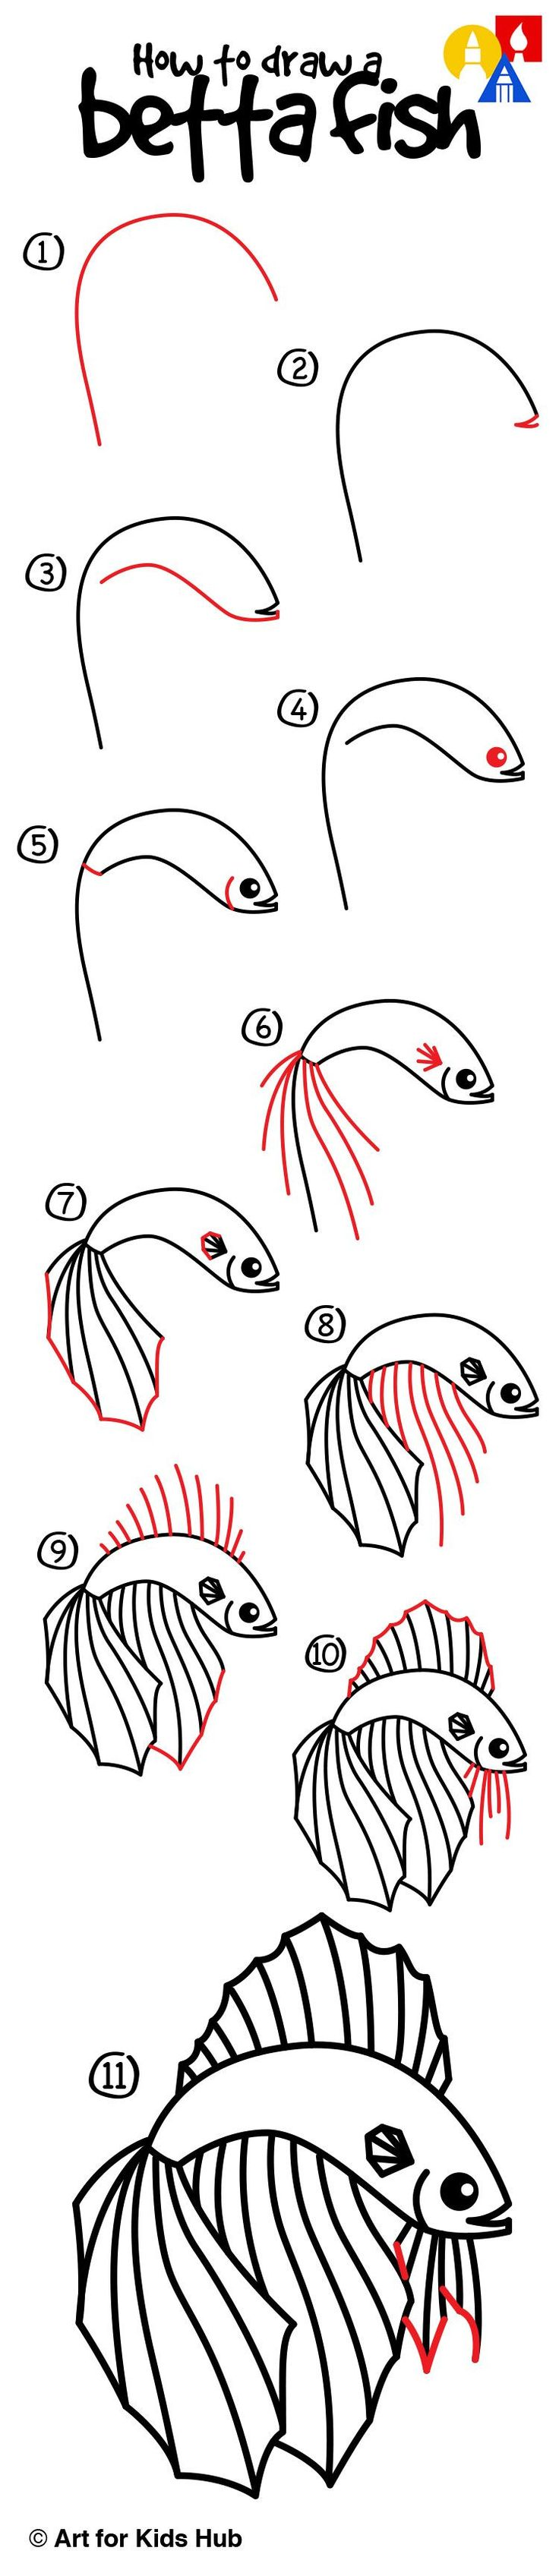 How To Draw A Betta Fish - Art for Kids Hub